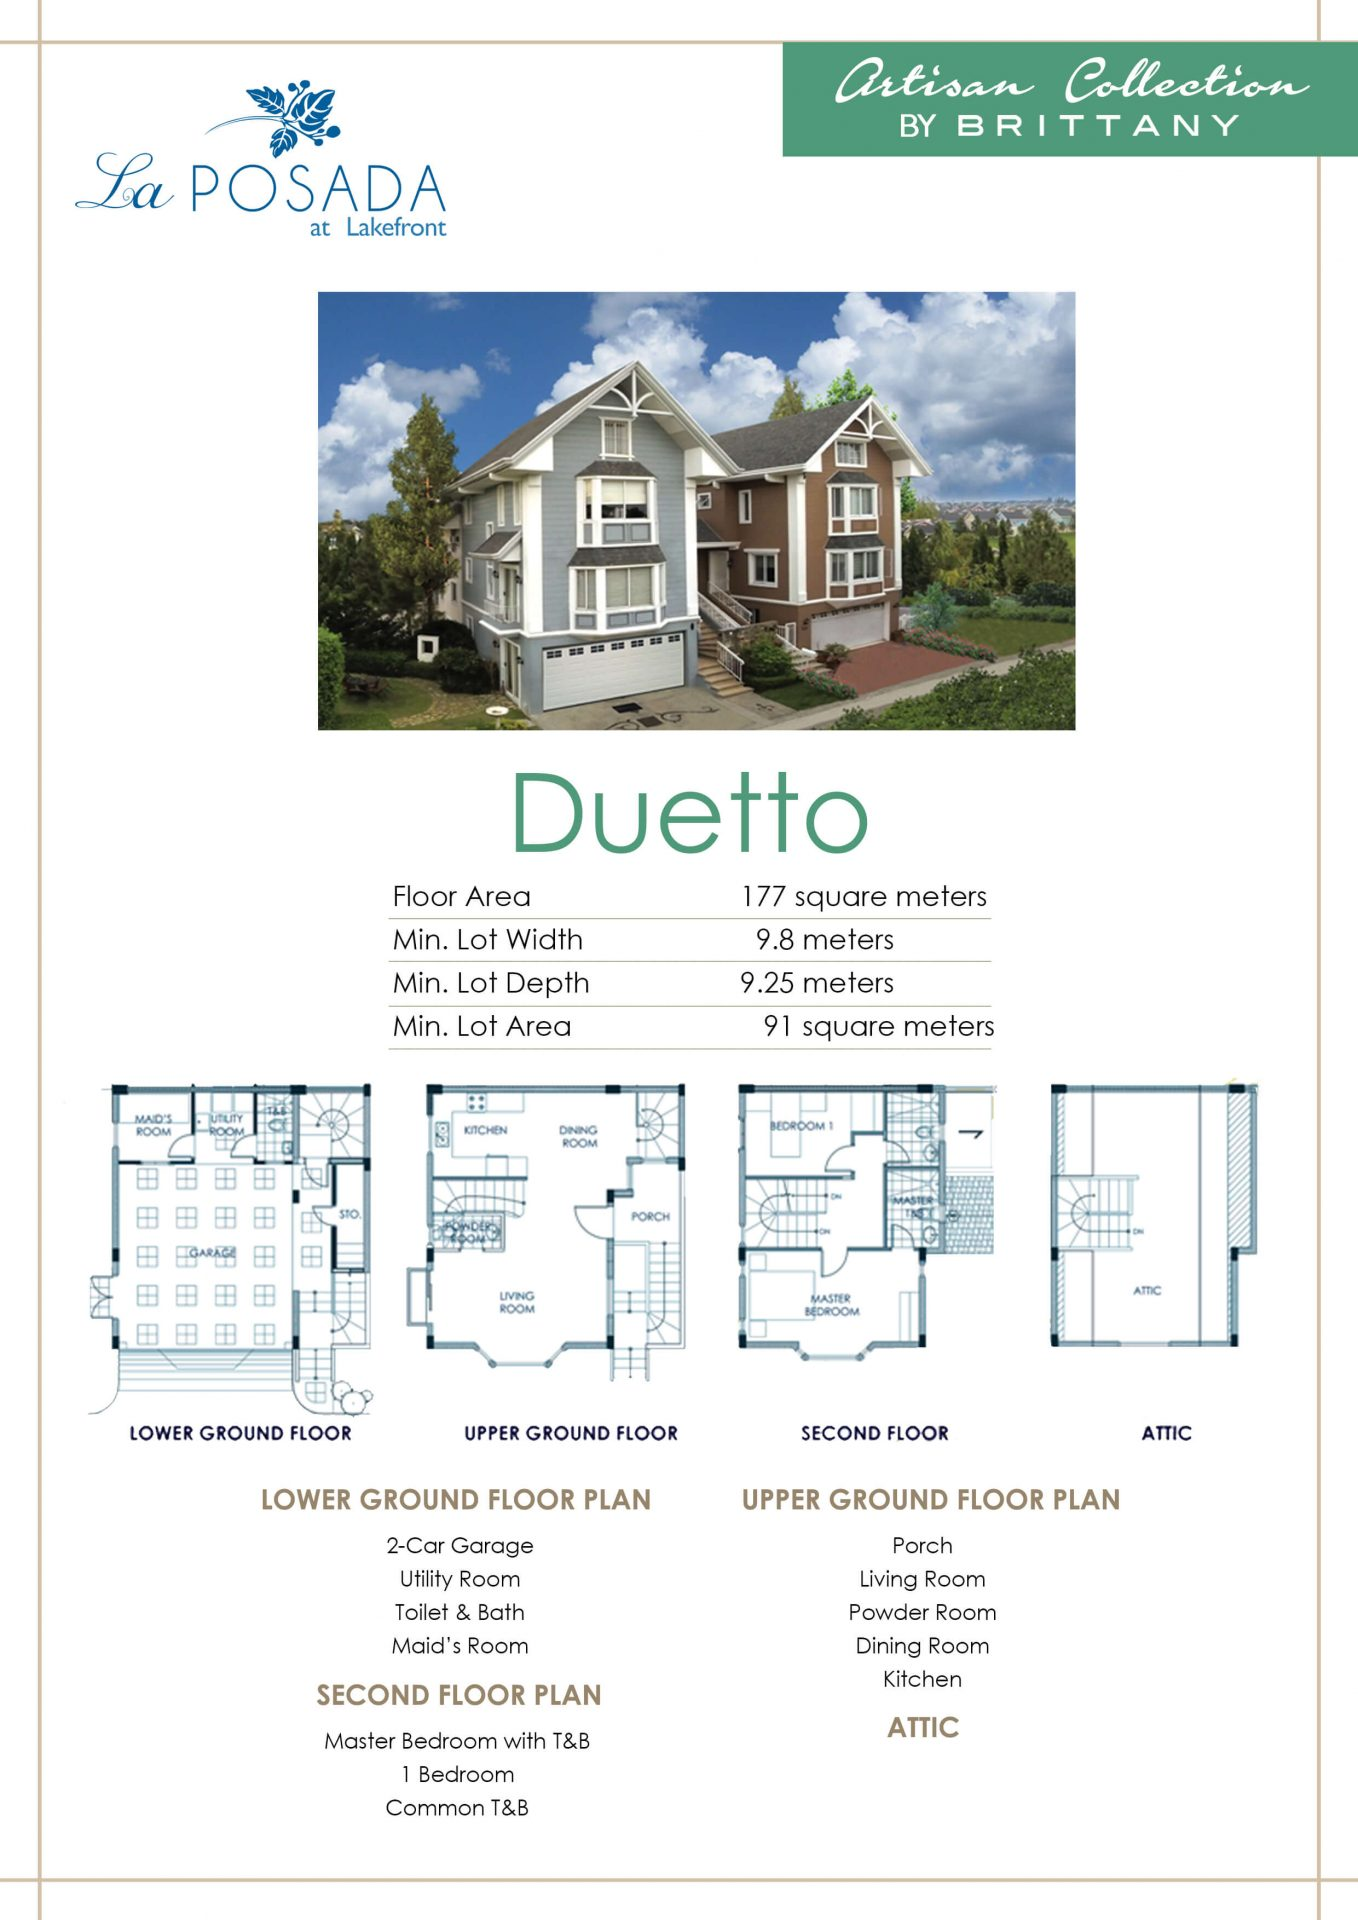 Vista Alabang | La Posada | Duetto House Model Infographic | Luxury Homes by Brittany Corporation